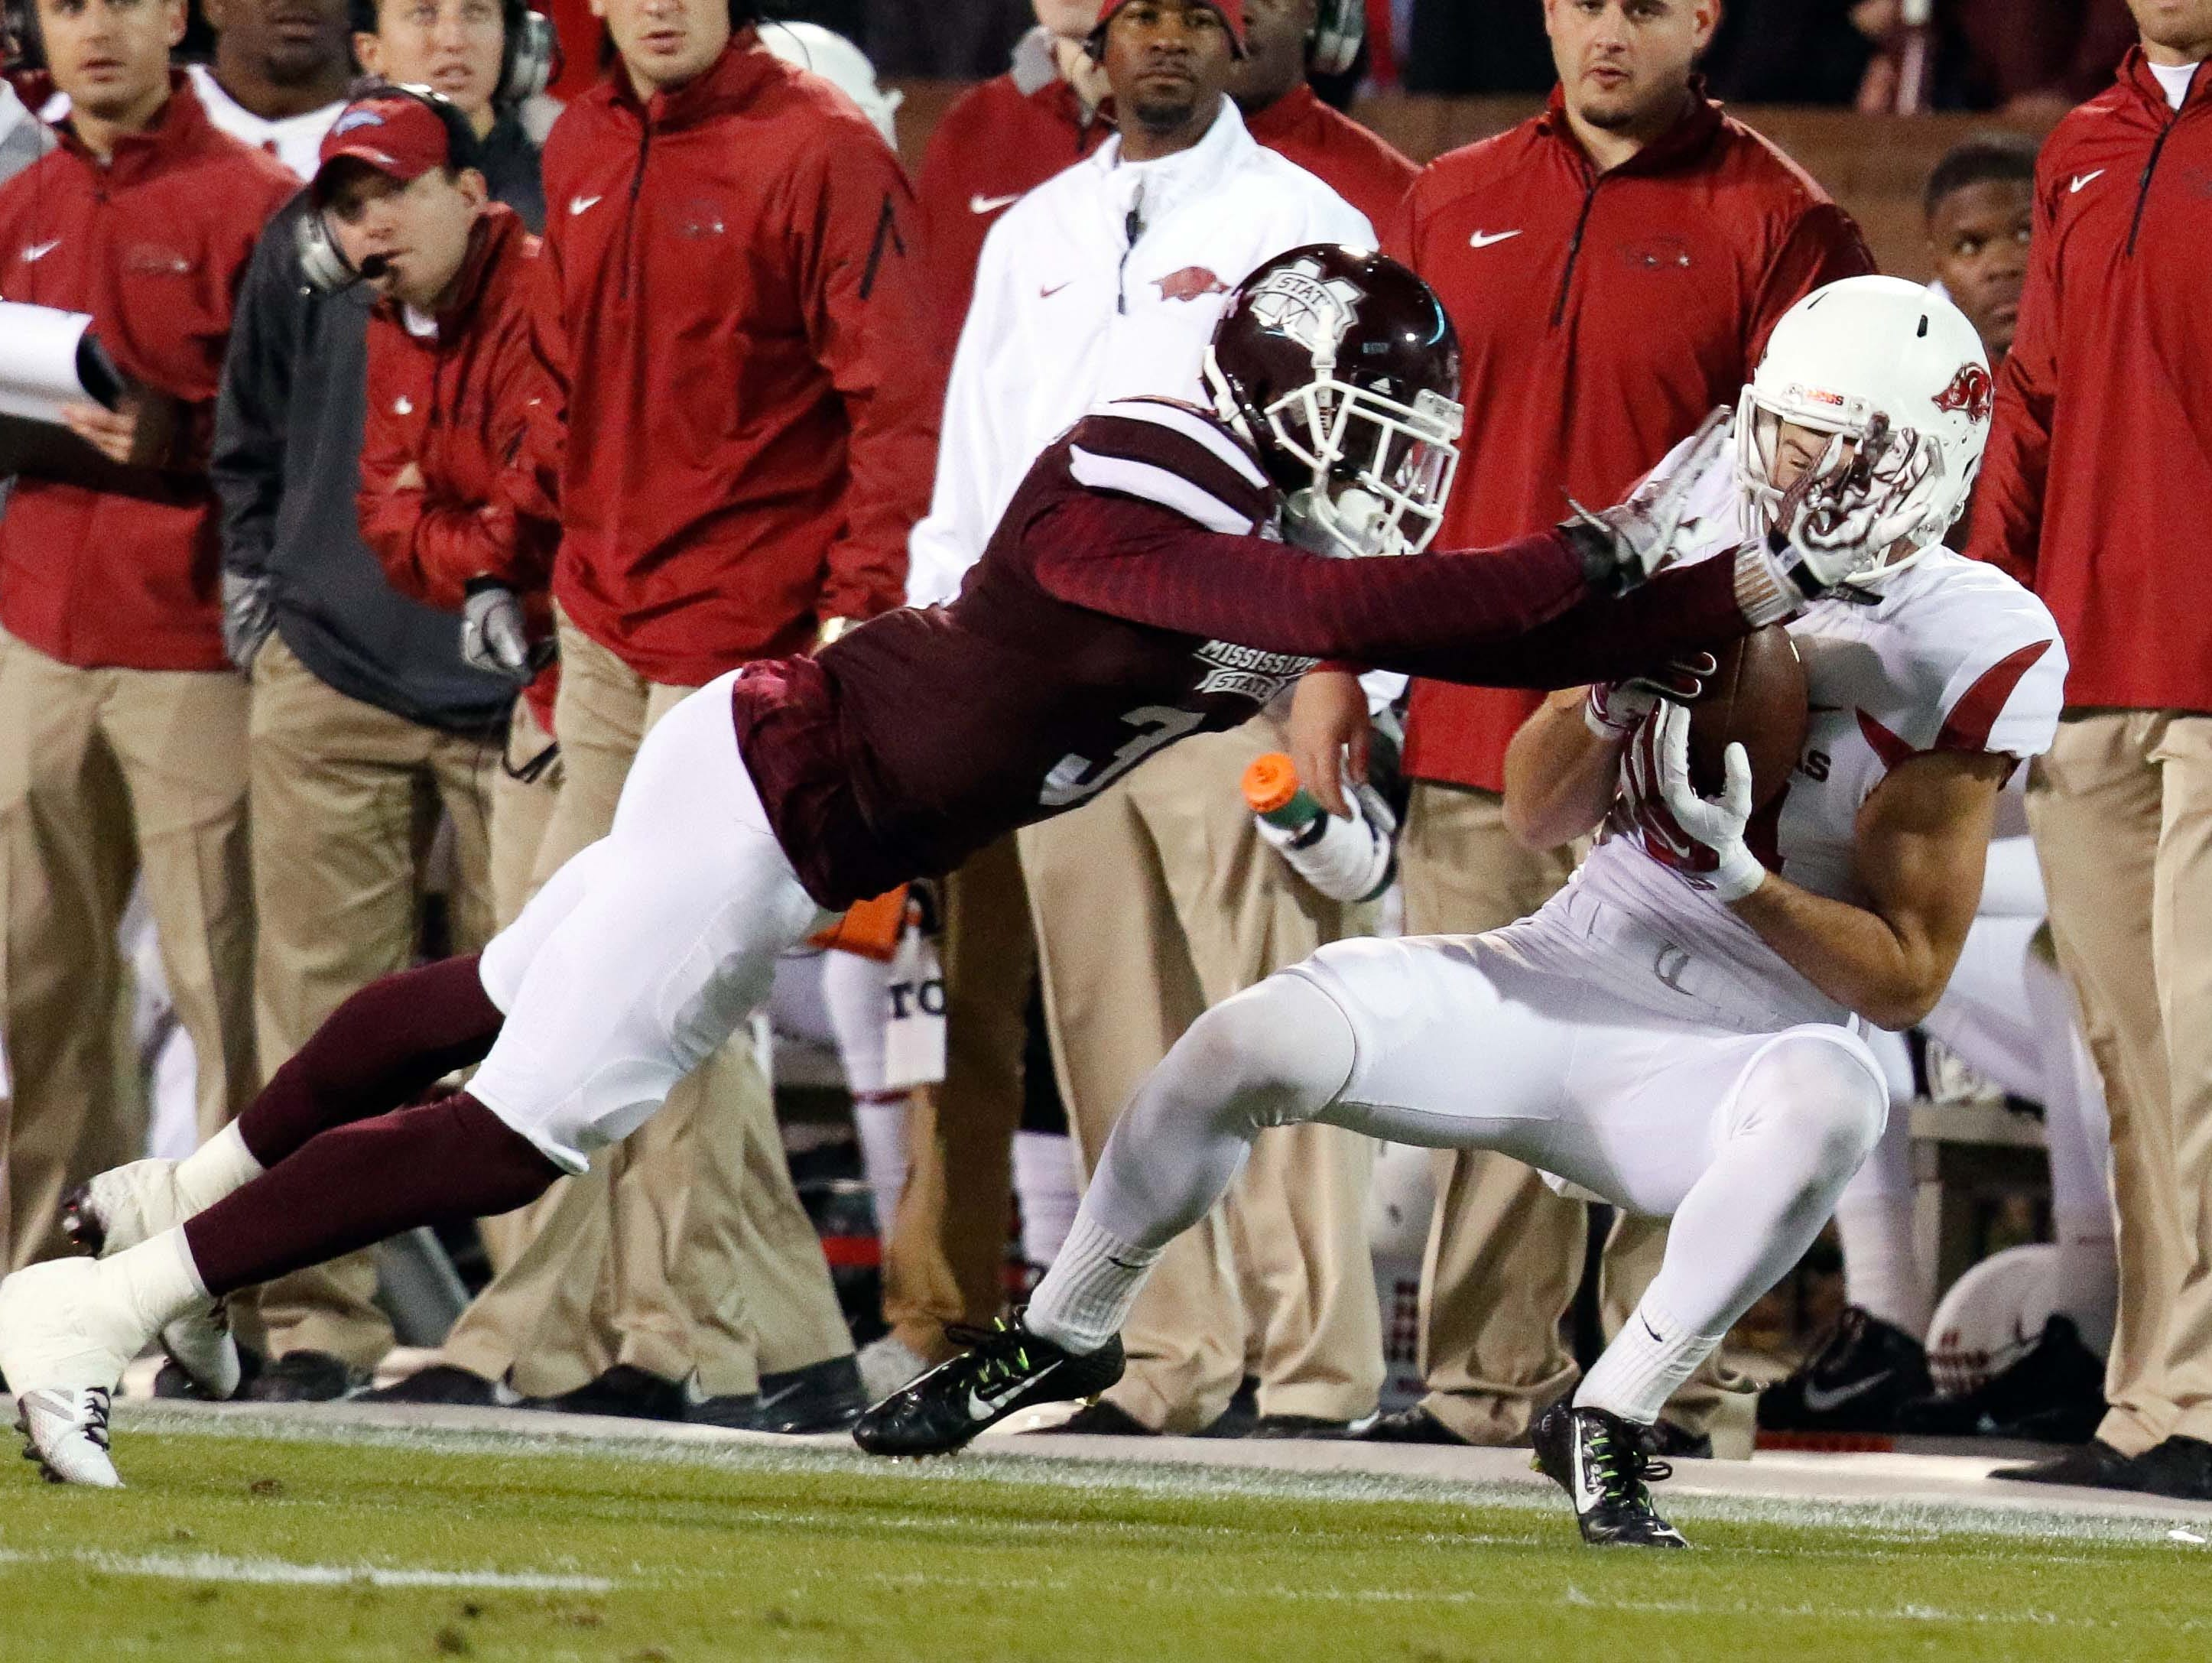 Arkansas Razorbacks wide receiver Cody Hollister, shown in this 2014 file photo, had foot surgery on Wednesday.